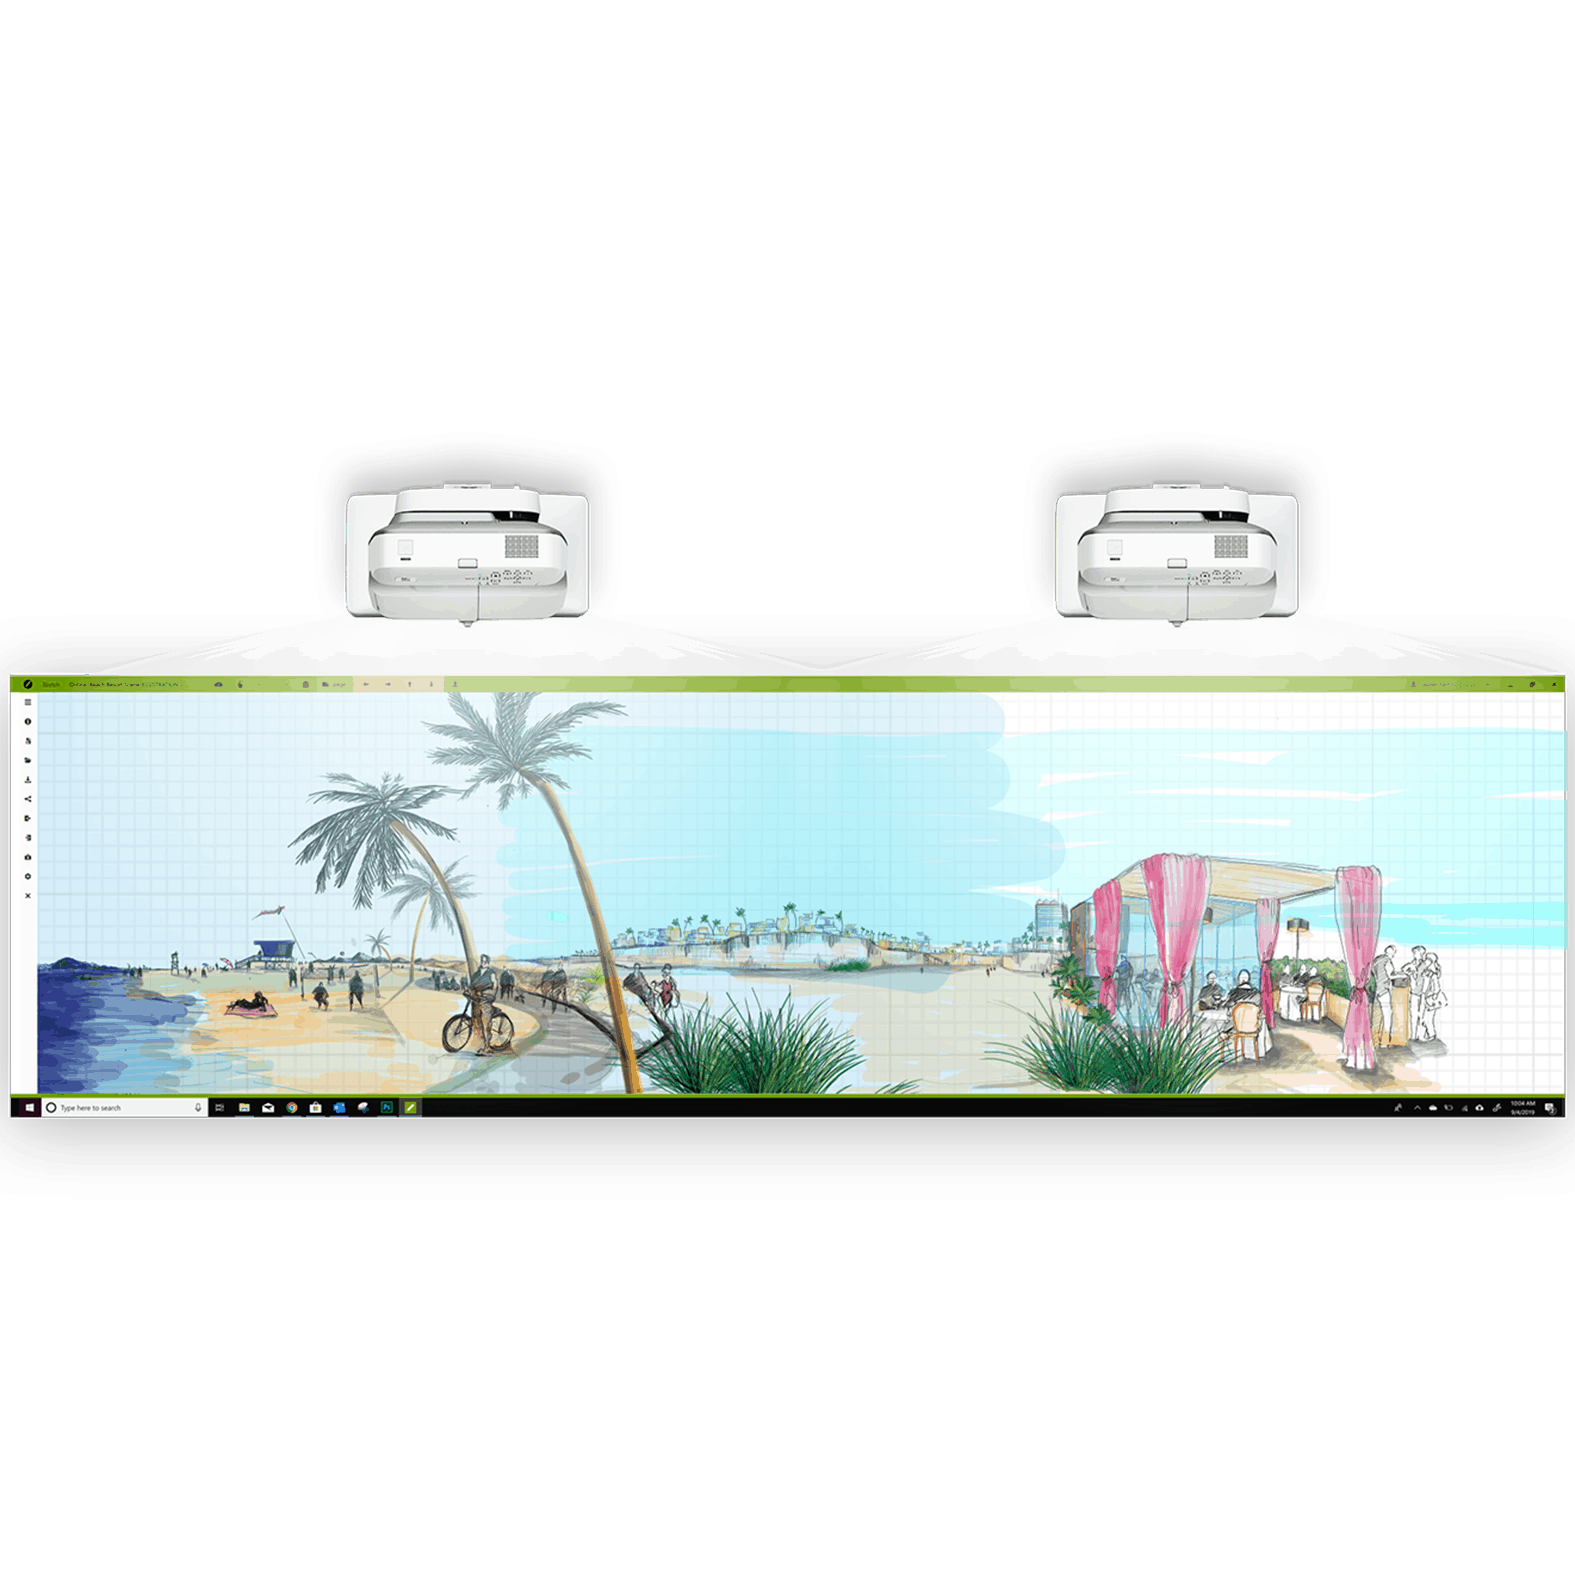 A drawing of a beach scene made on Hoylu Sketch software with HoyluWall